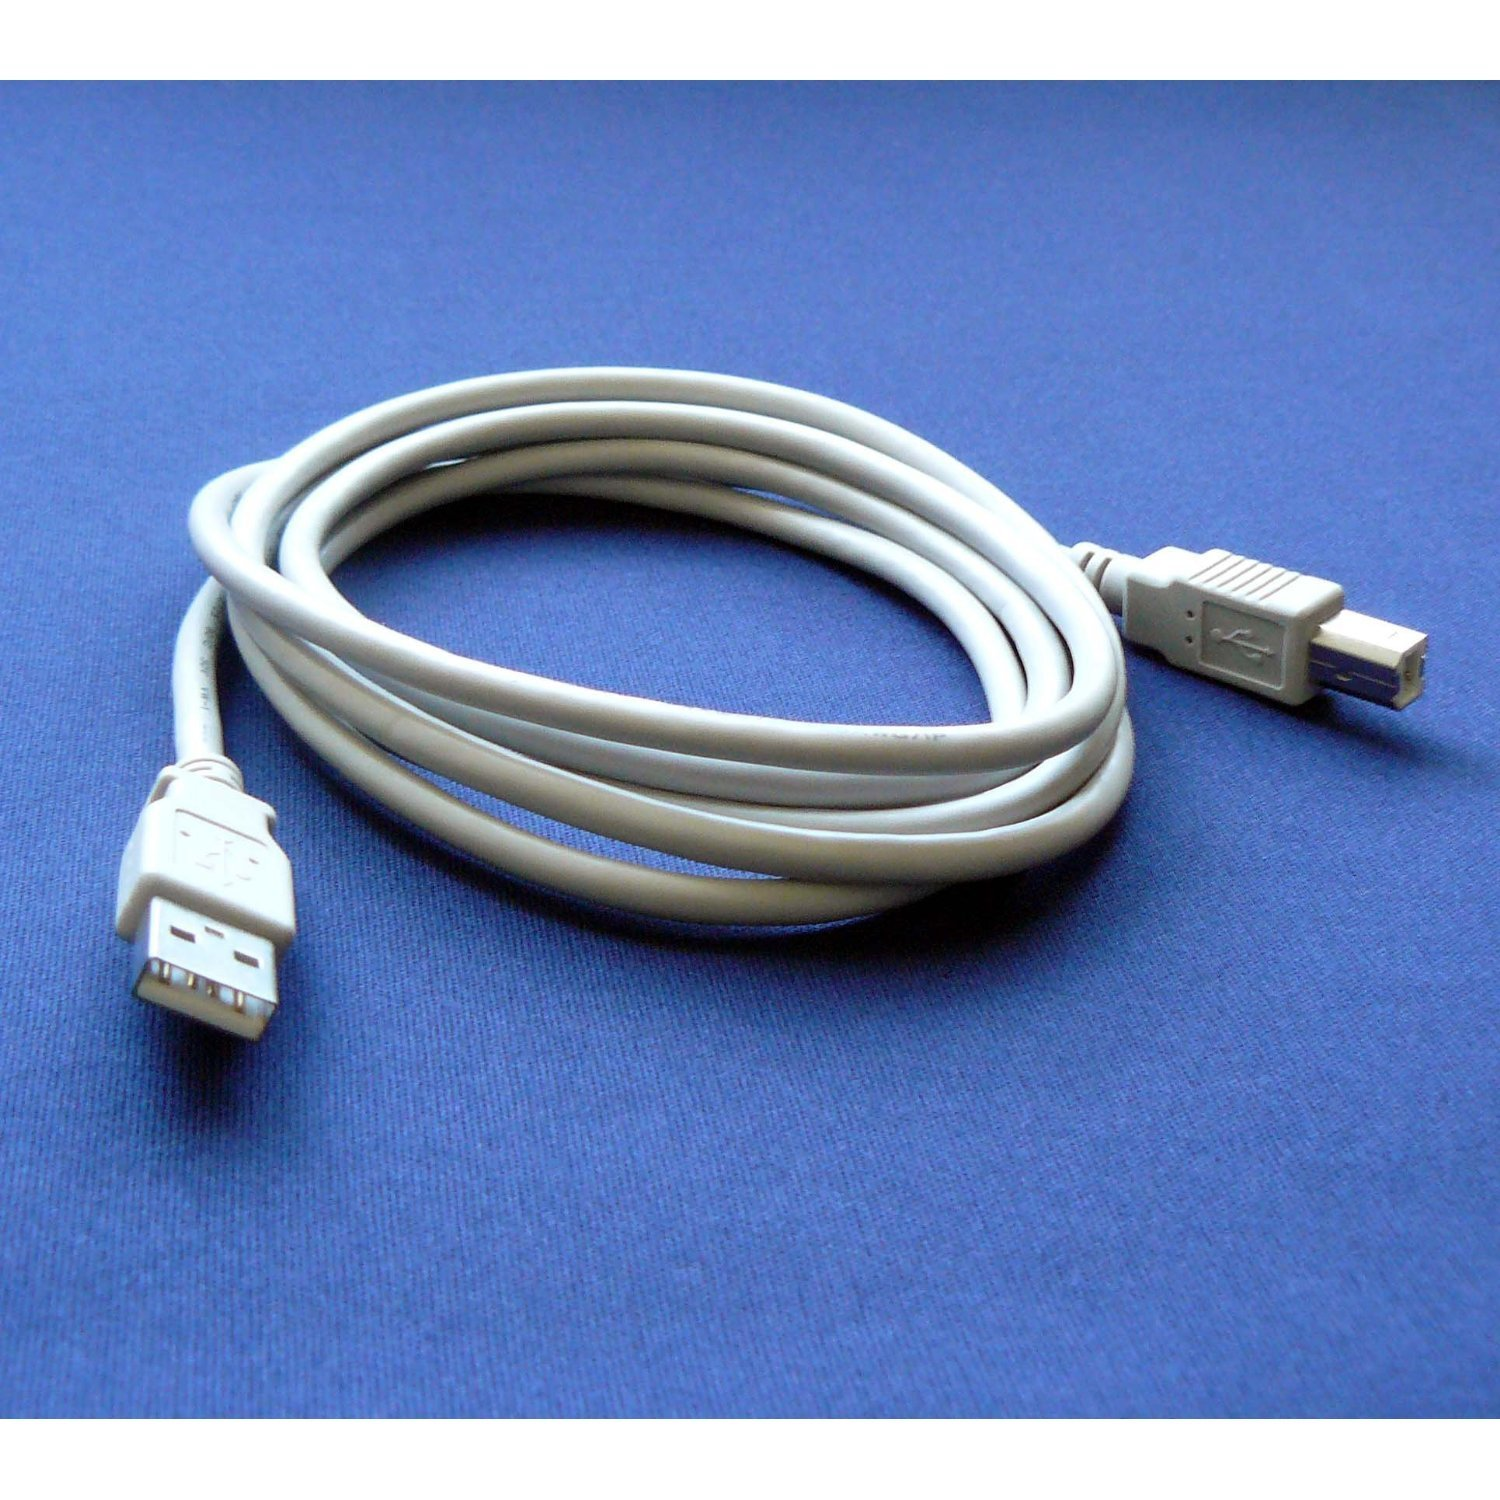 Primary image for Canon Pixma MP470 Inkjet Printer Compatible USB 2.0 Cable Cord for PC, Notebo...